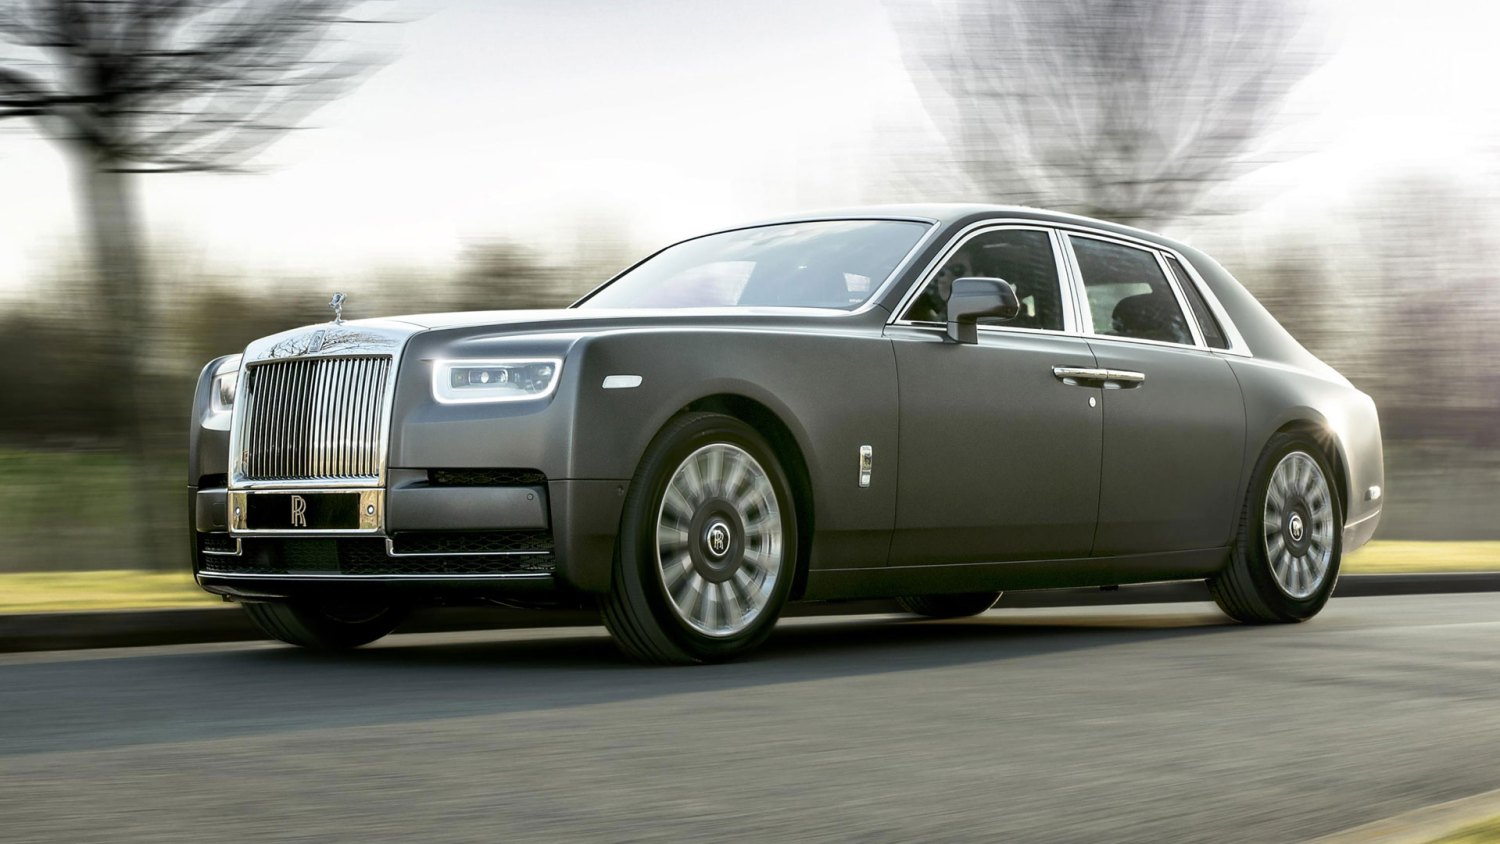 Rolls-Royce Phantom - greatest cars of the decade